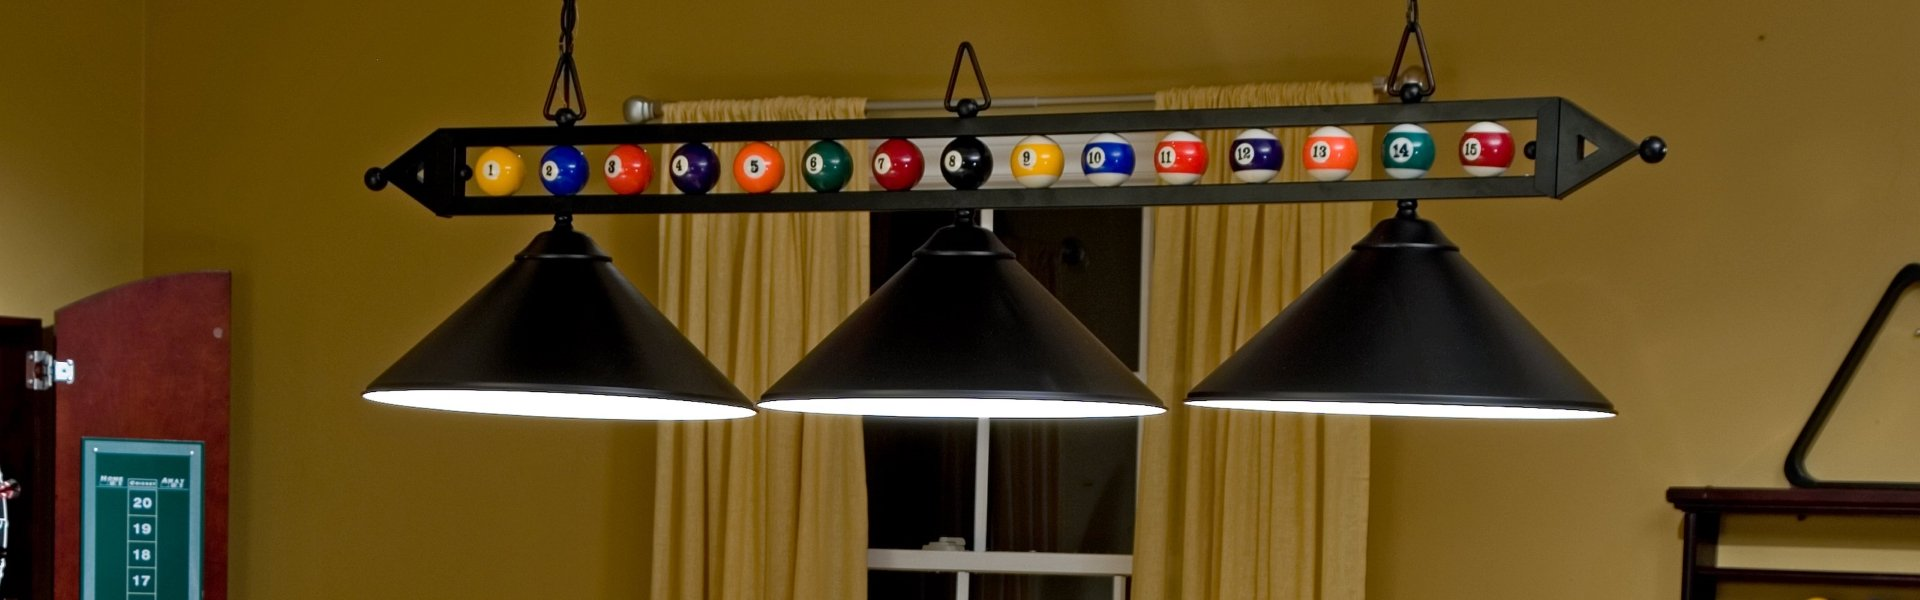 Best Pool Table Lighting Picks Reviewed in Detail